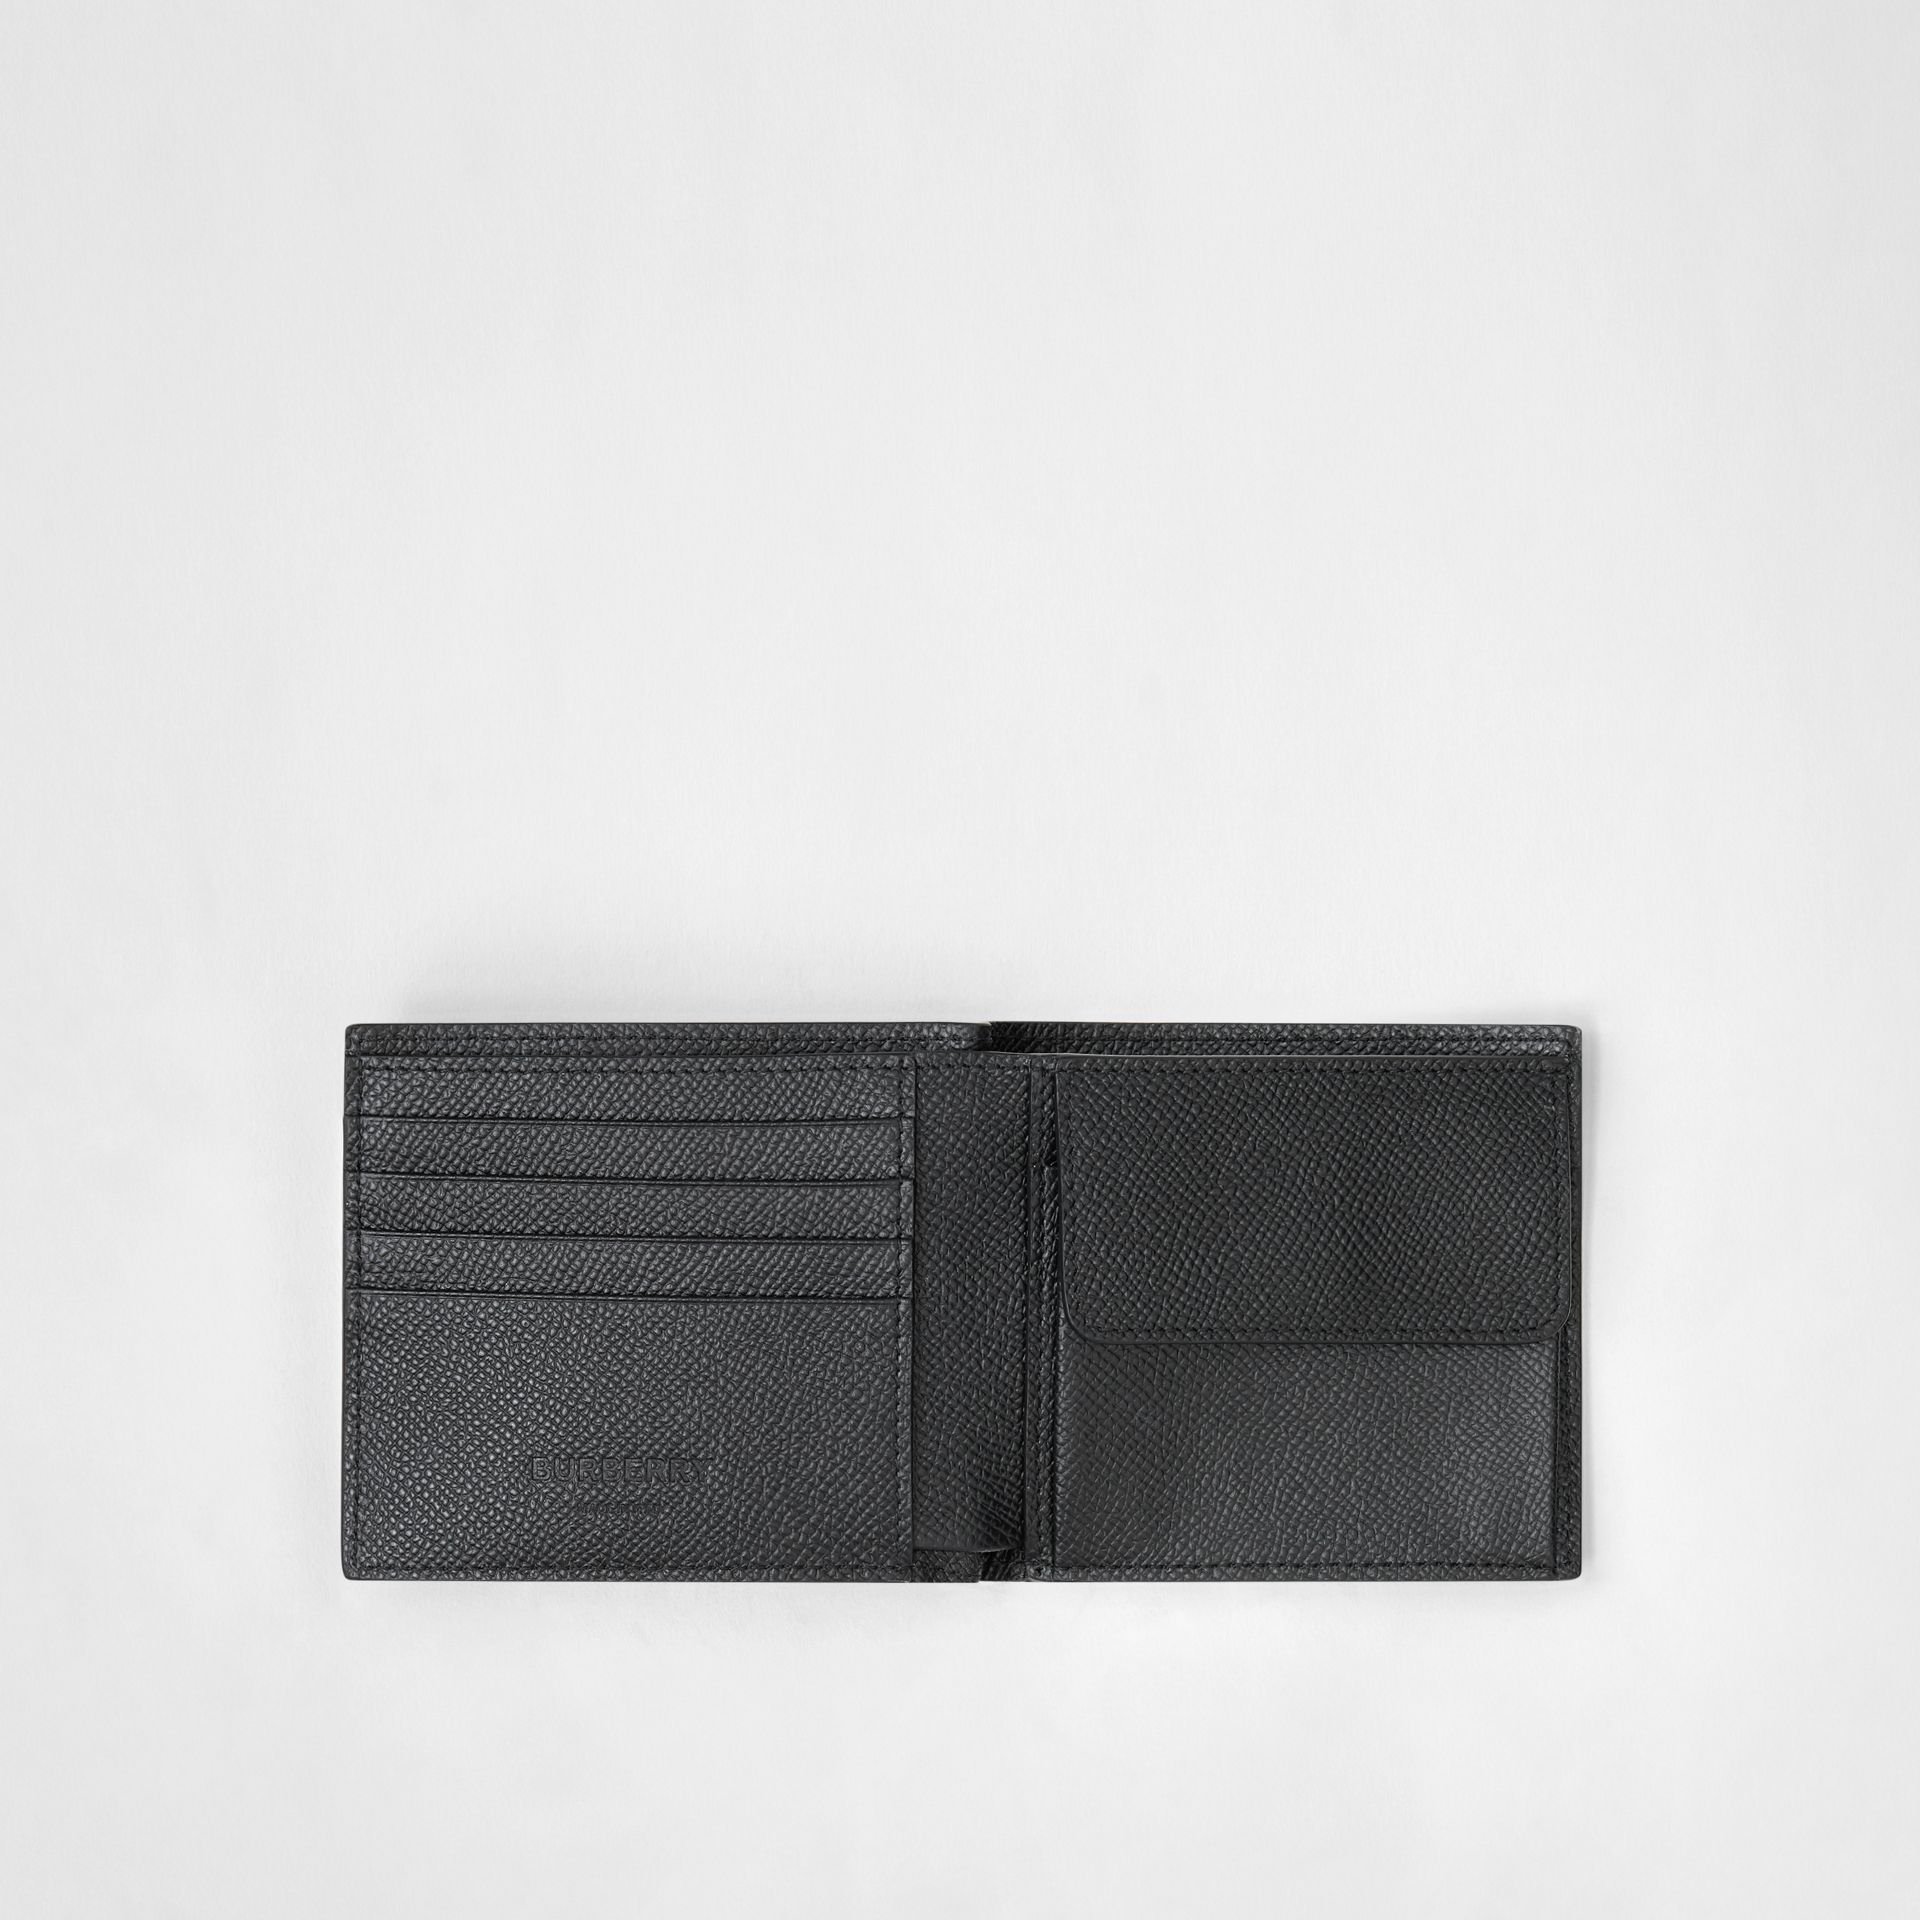 Grainy Leather International Bifold Coin Wallet in Black - Men | Burberry Australia - gallery image 2